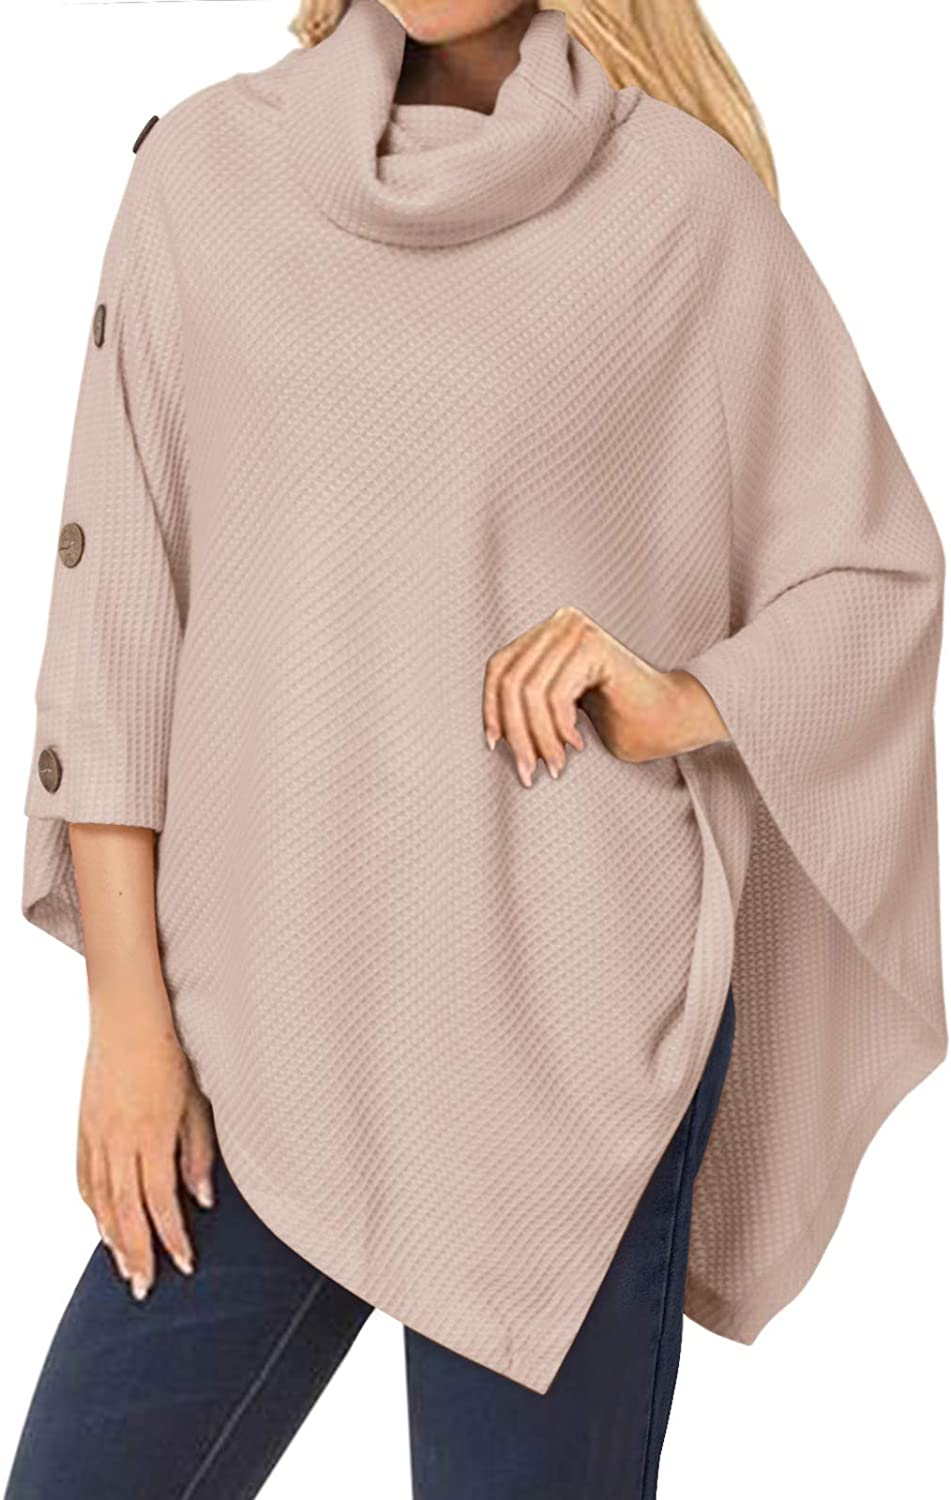 StyleDome Women's Turtle Cowl Neck Pullover Sweater Poncho Asymmetric Hem Loose Knit Button Tops